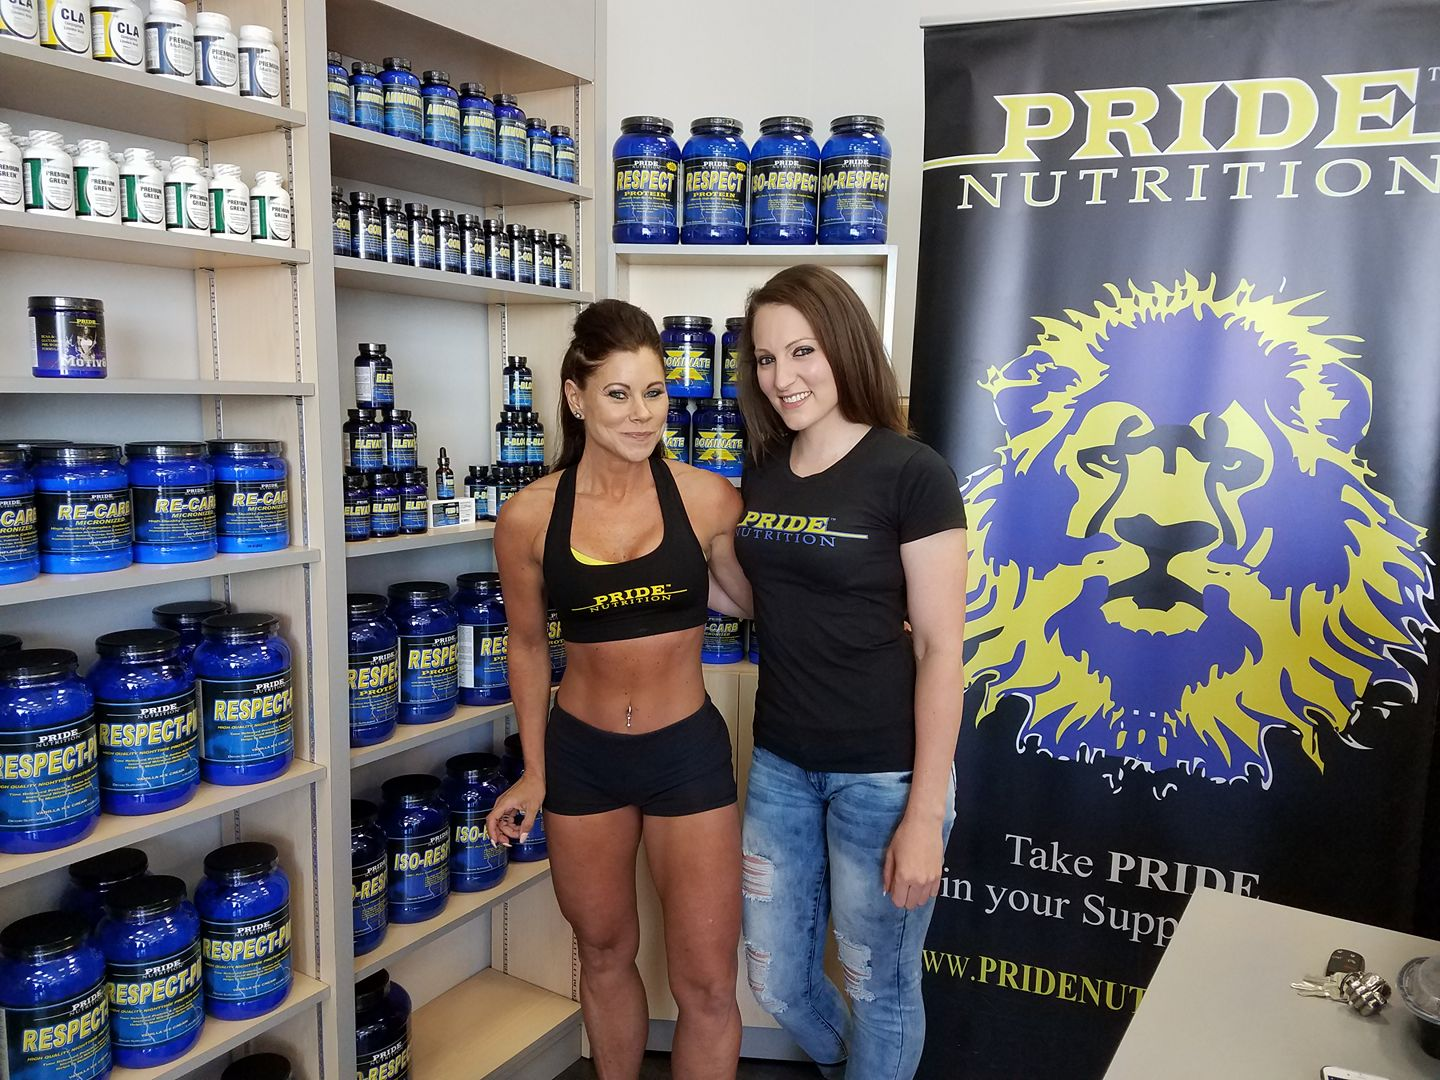 pride-showroom-staci-and-amanda.jpg